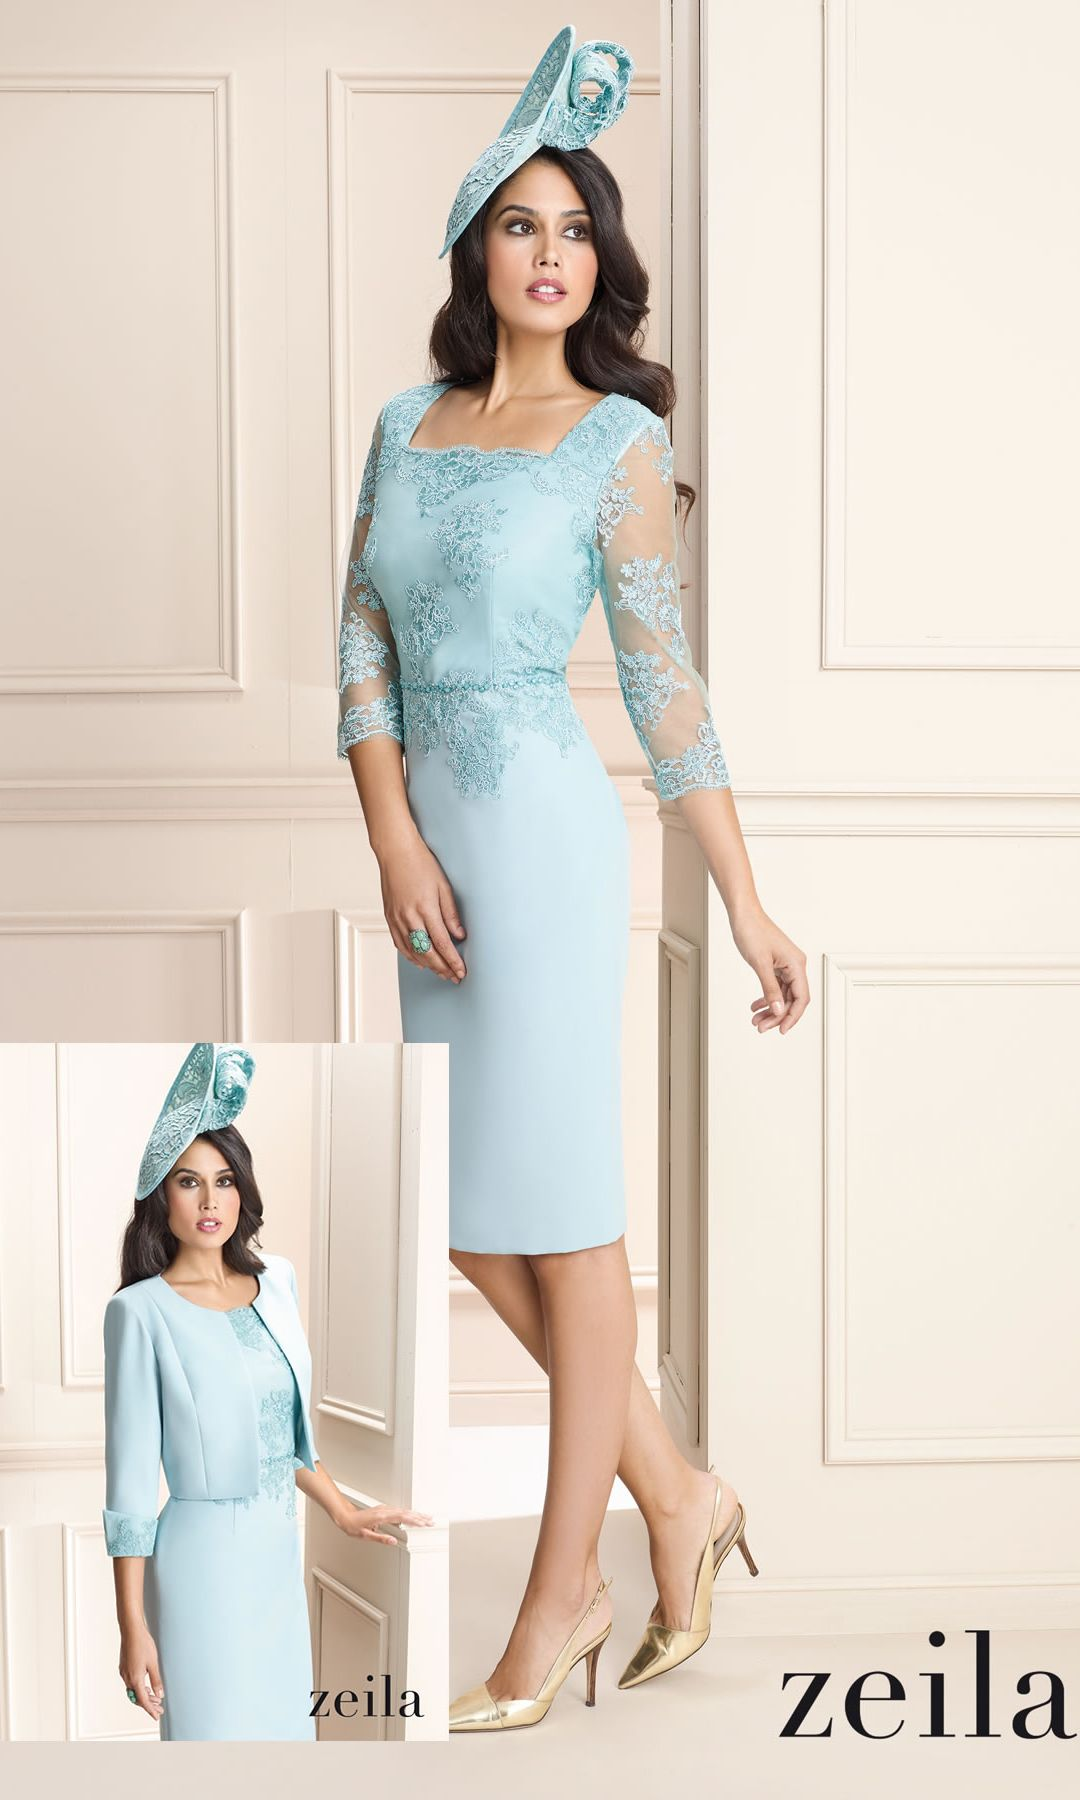 Zeila Mother Of The Bride And Groom Outfits With Stunning Colours Styled For Real Women Available In Bournemouth Dorset At Fab Frocks